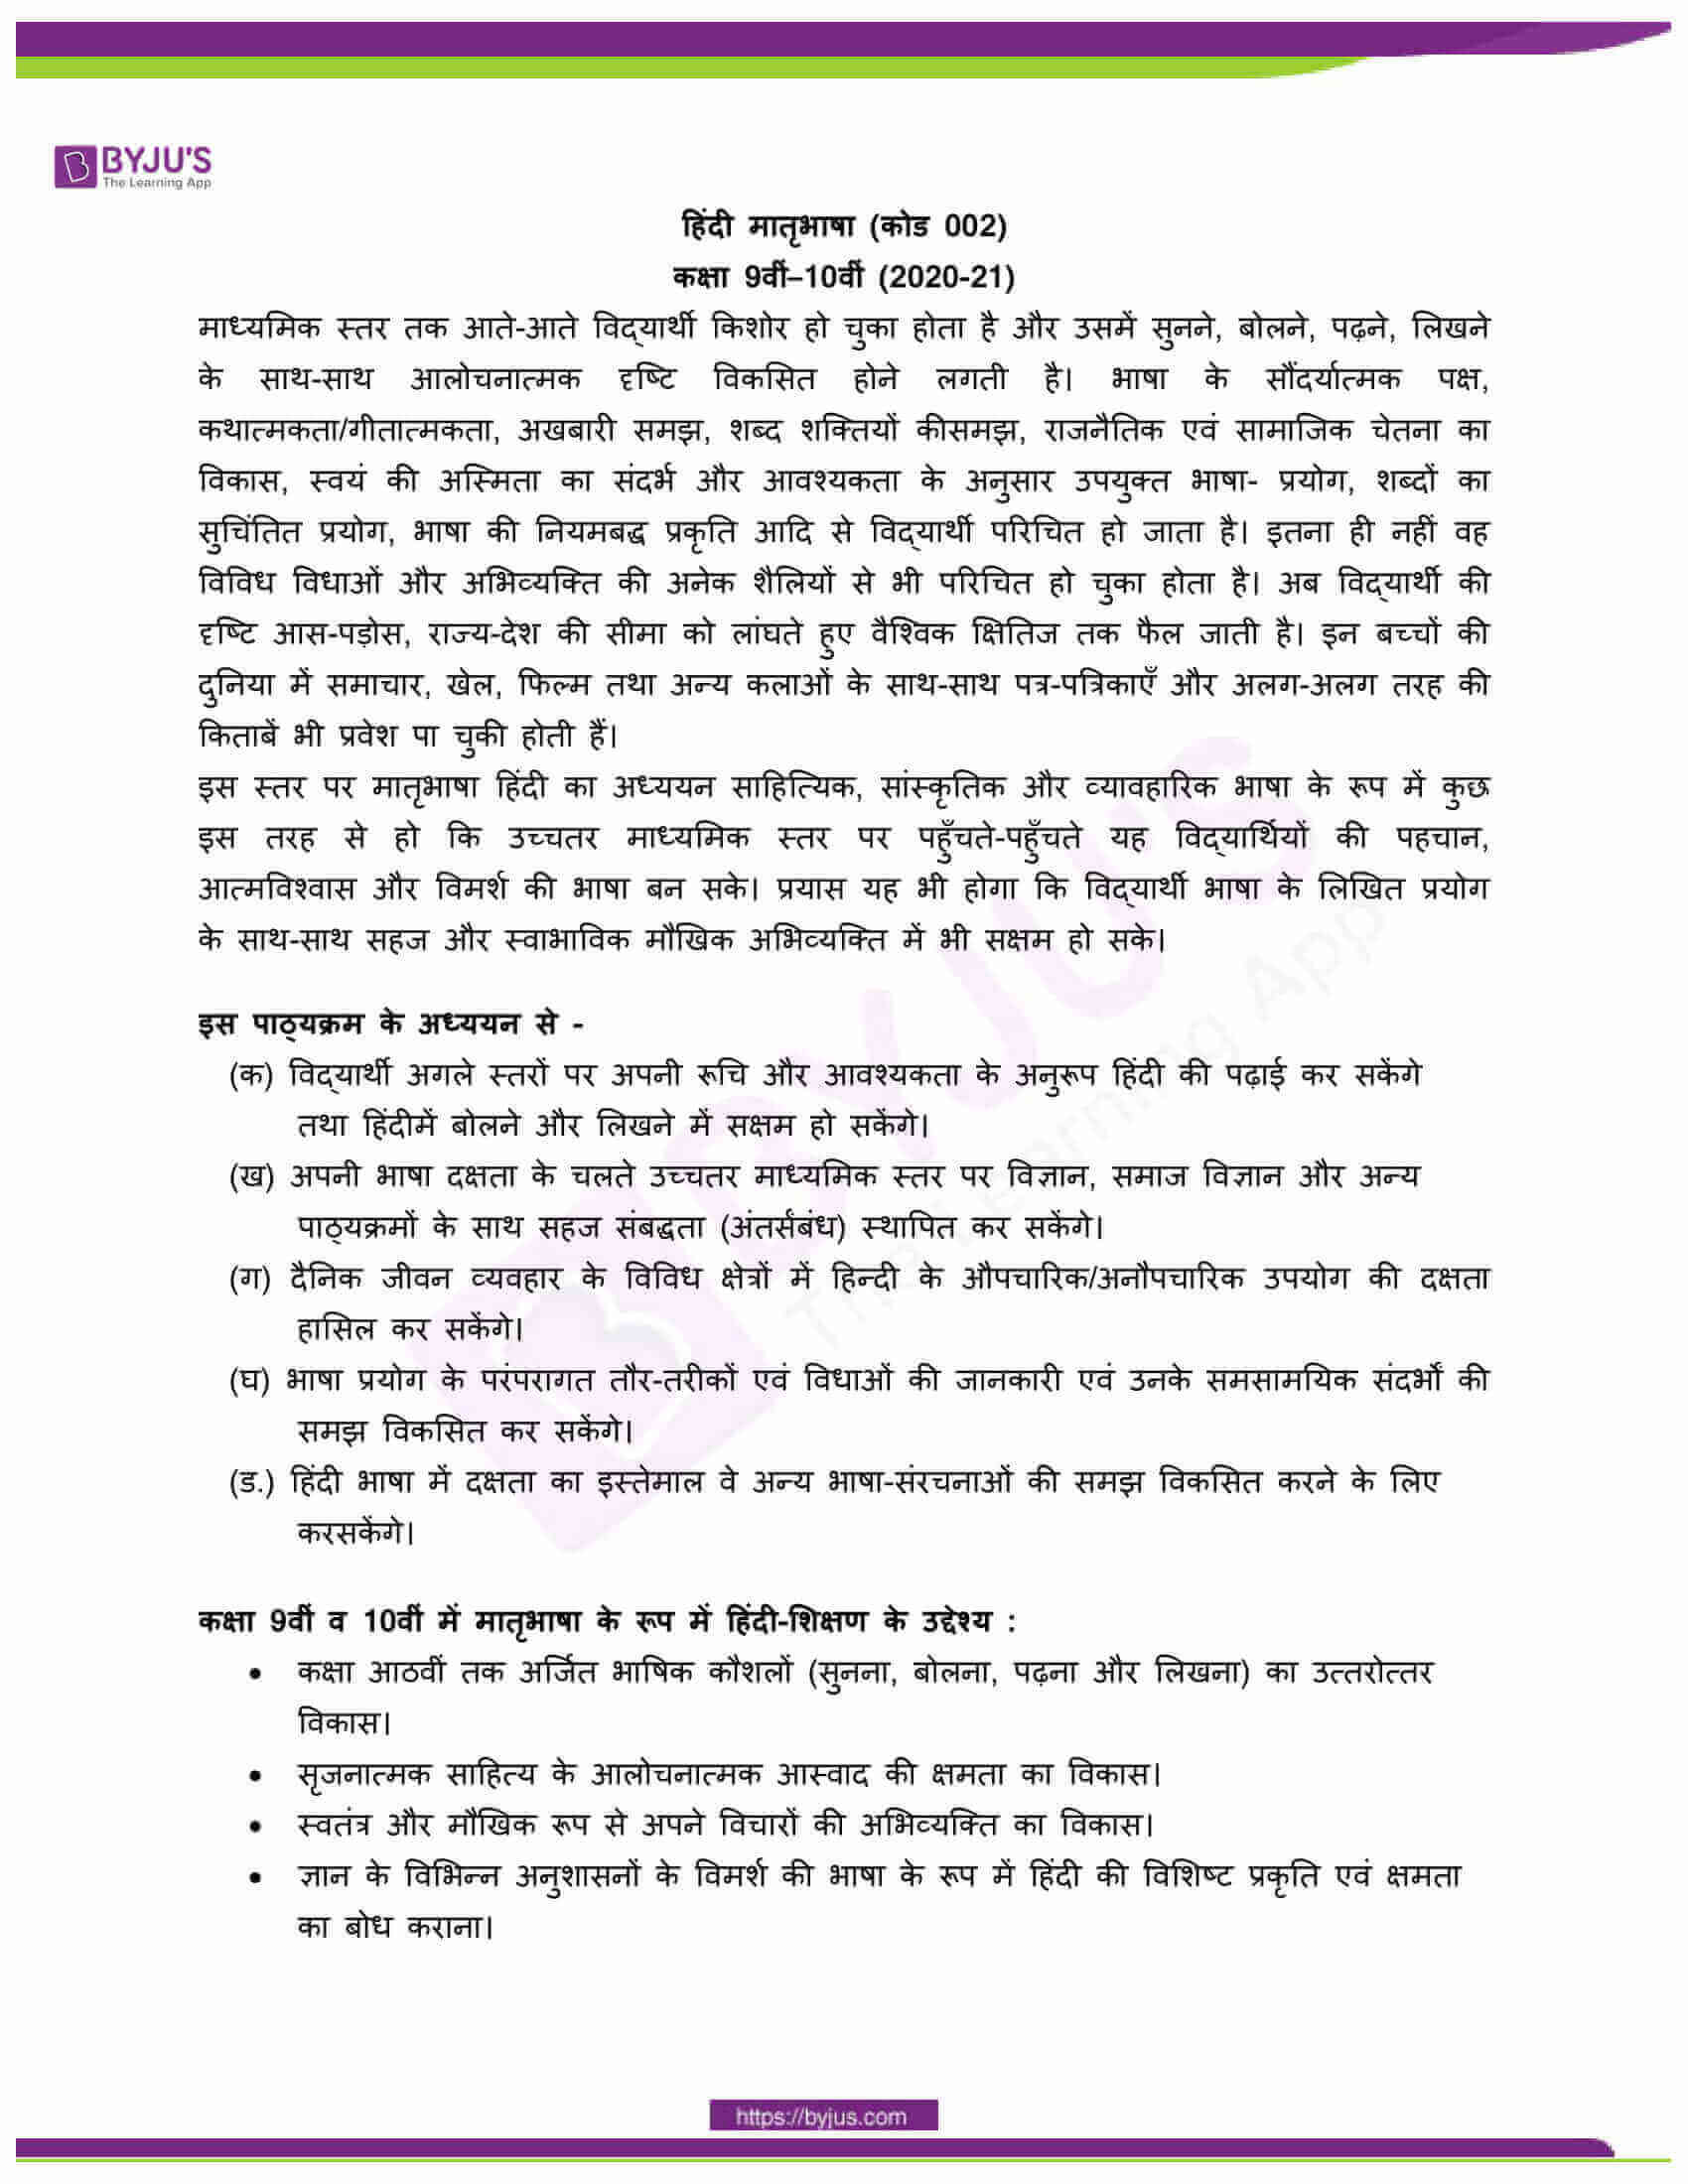 CBSE Class 10 Hindi Course A Revised Syllabus 2020 21 01